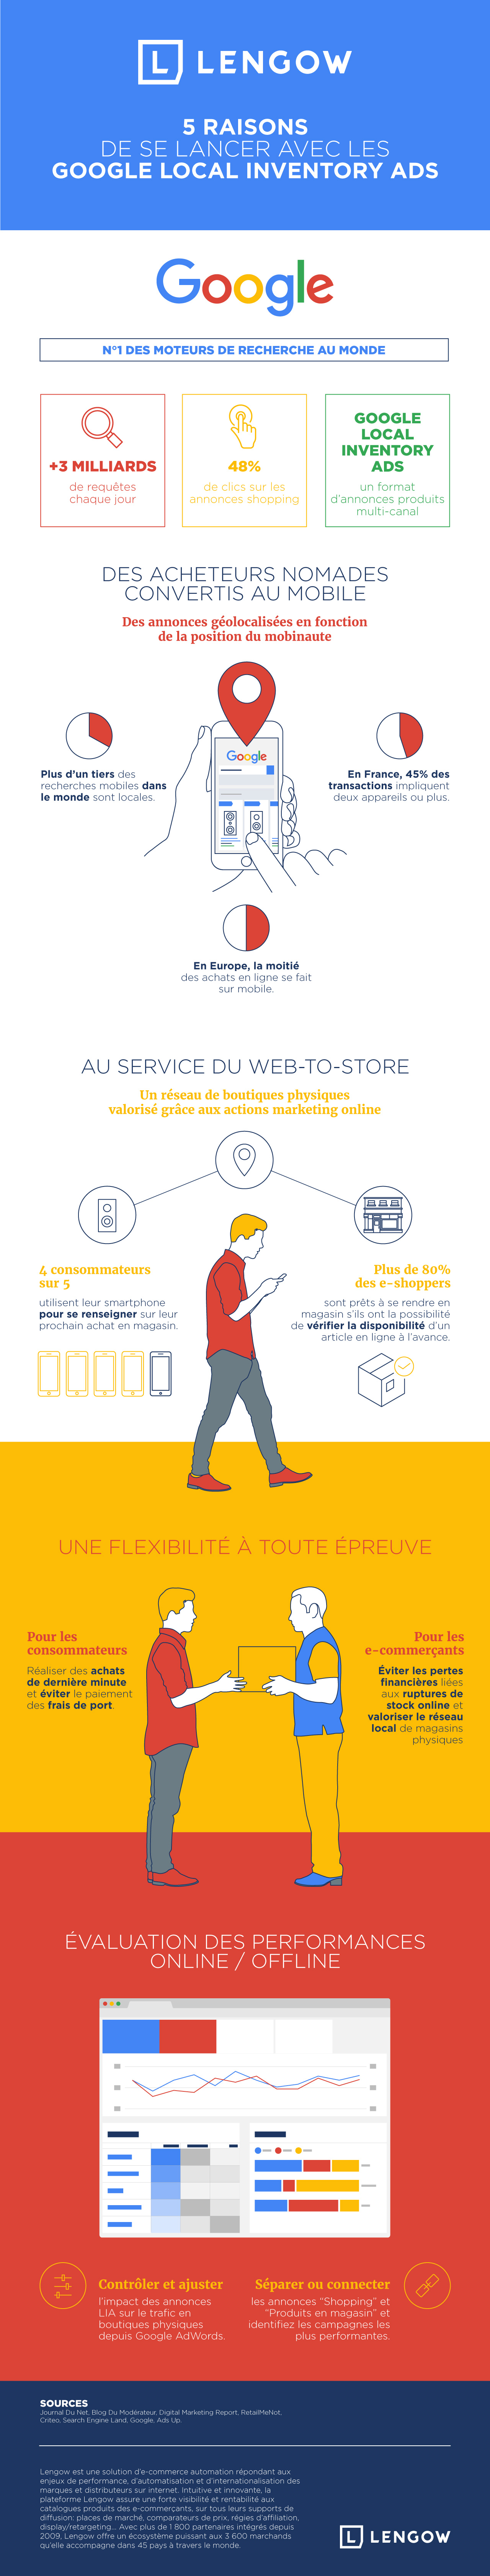 infographie-local-inventory-ads